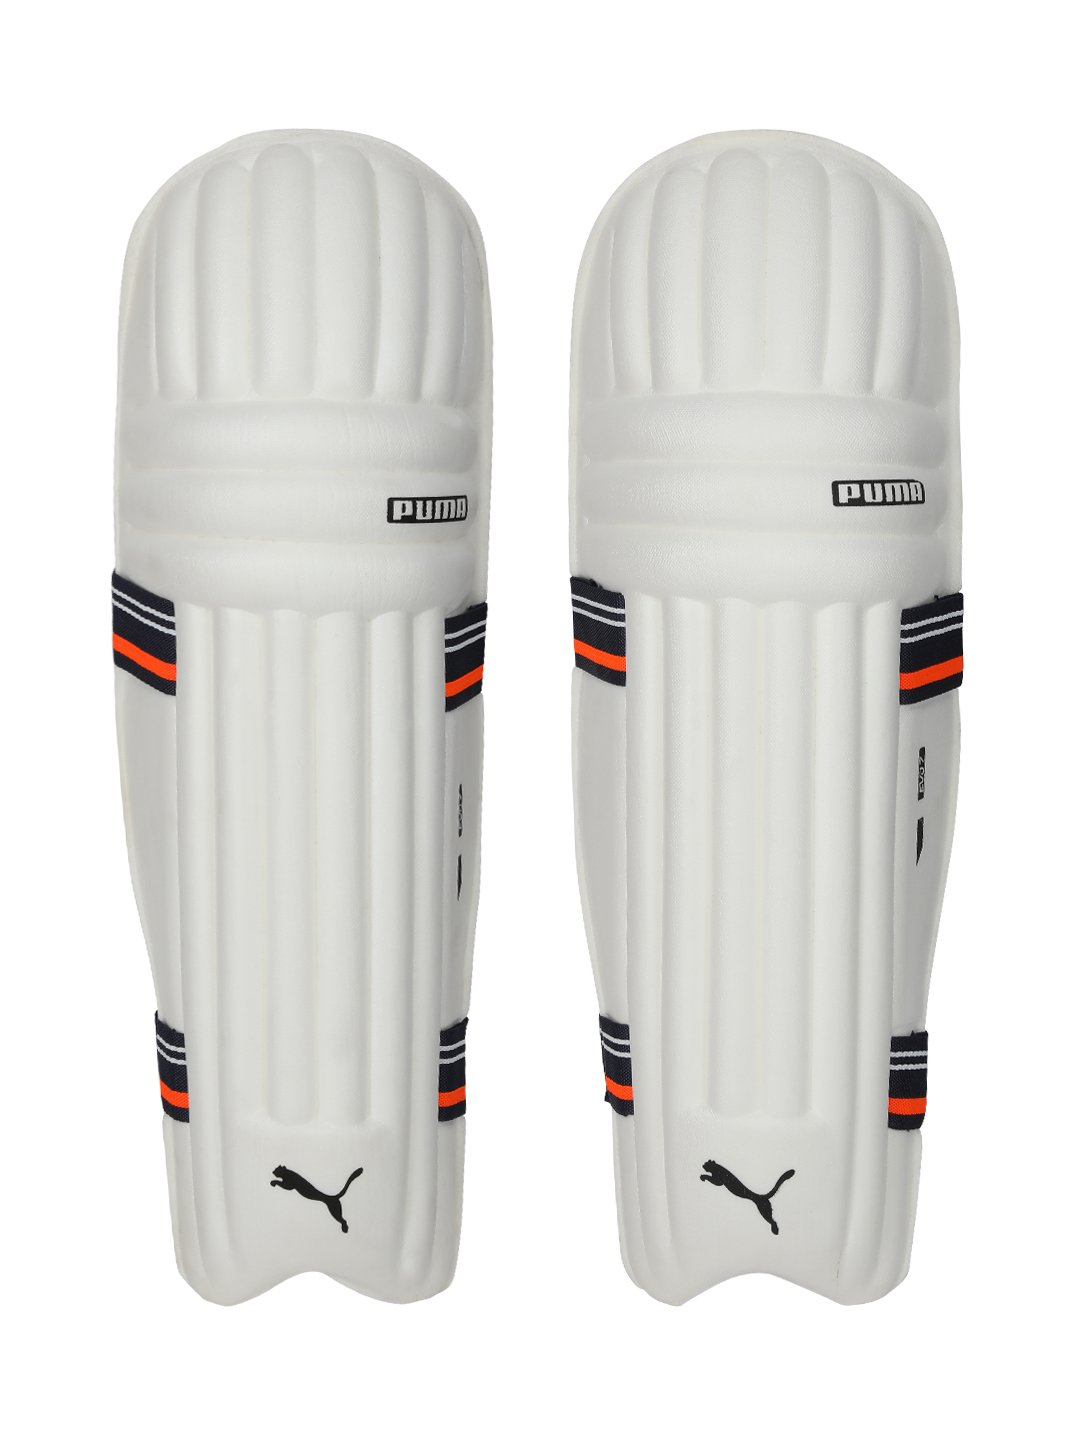 EVO 7 MD Batting pad